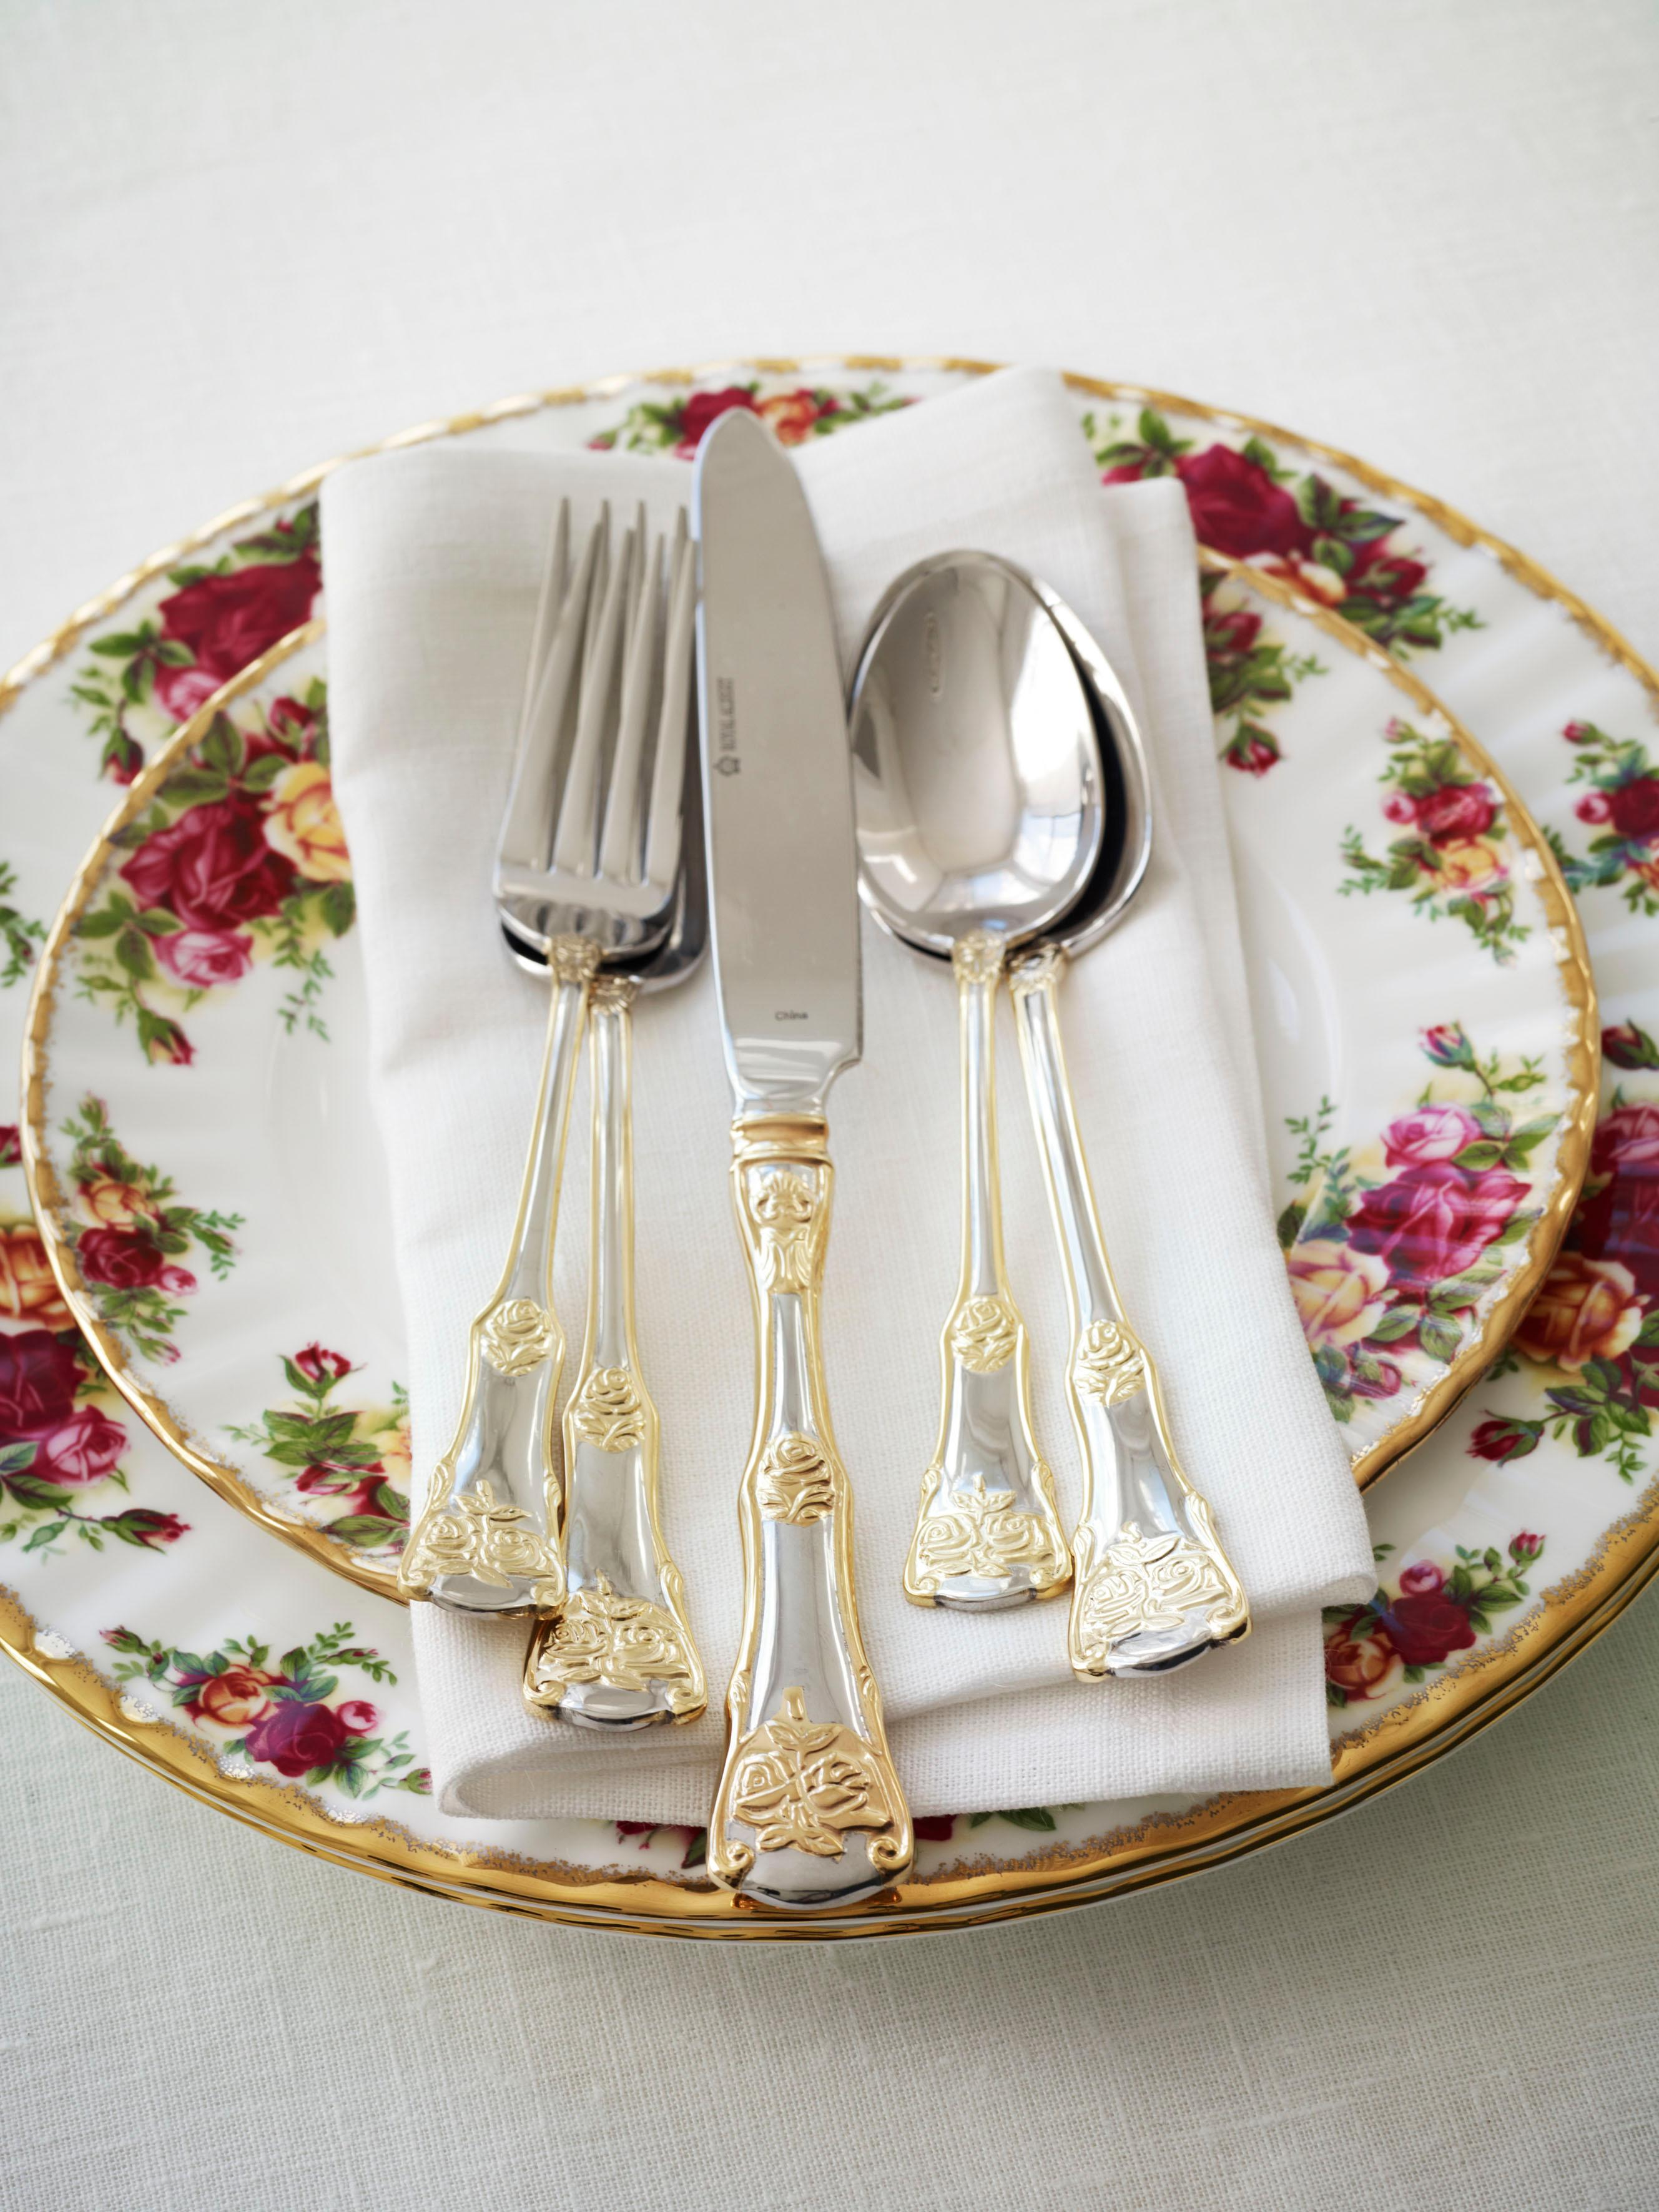 Amazon Com Old Country Roses 20 Piece Flatware Set